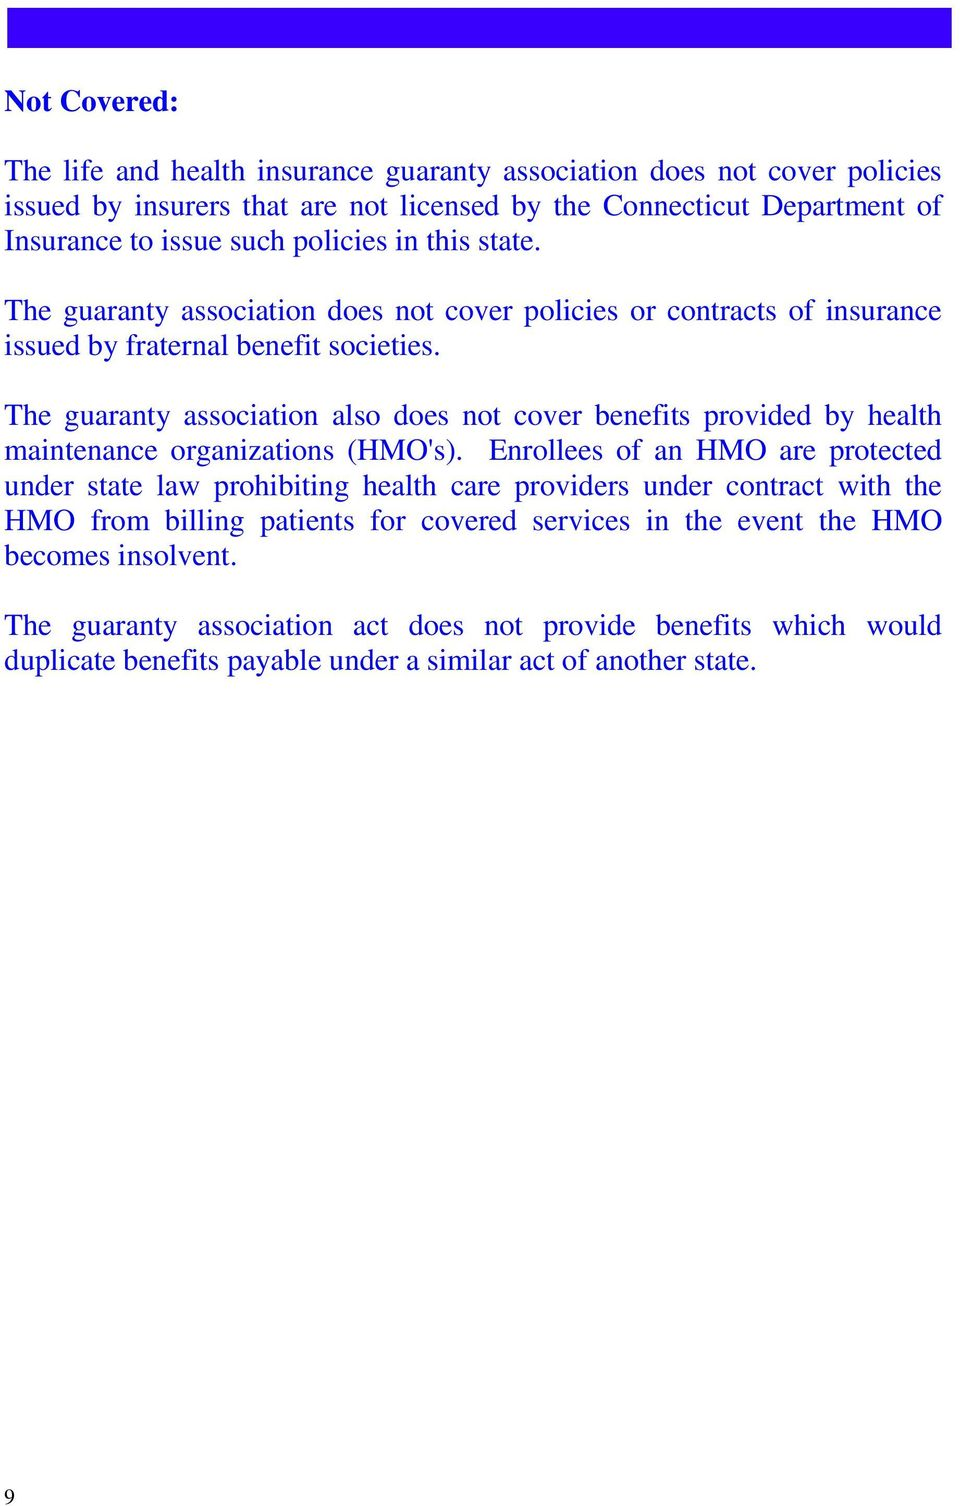 The guaranty association also does not cover benefits provided by health maintenance organizations (HMO's).